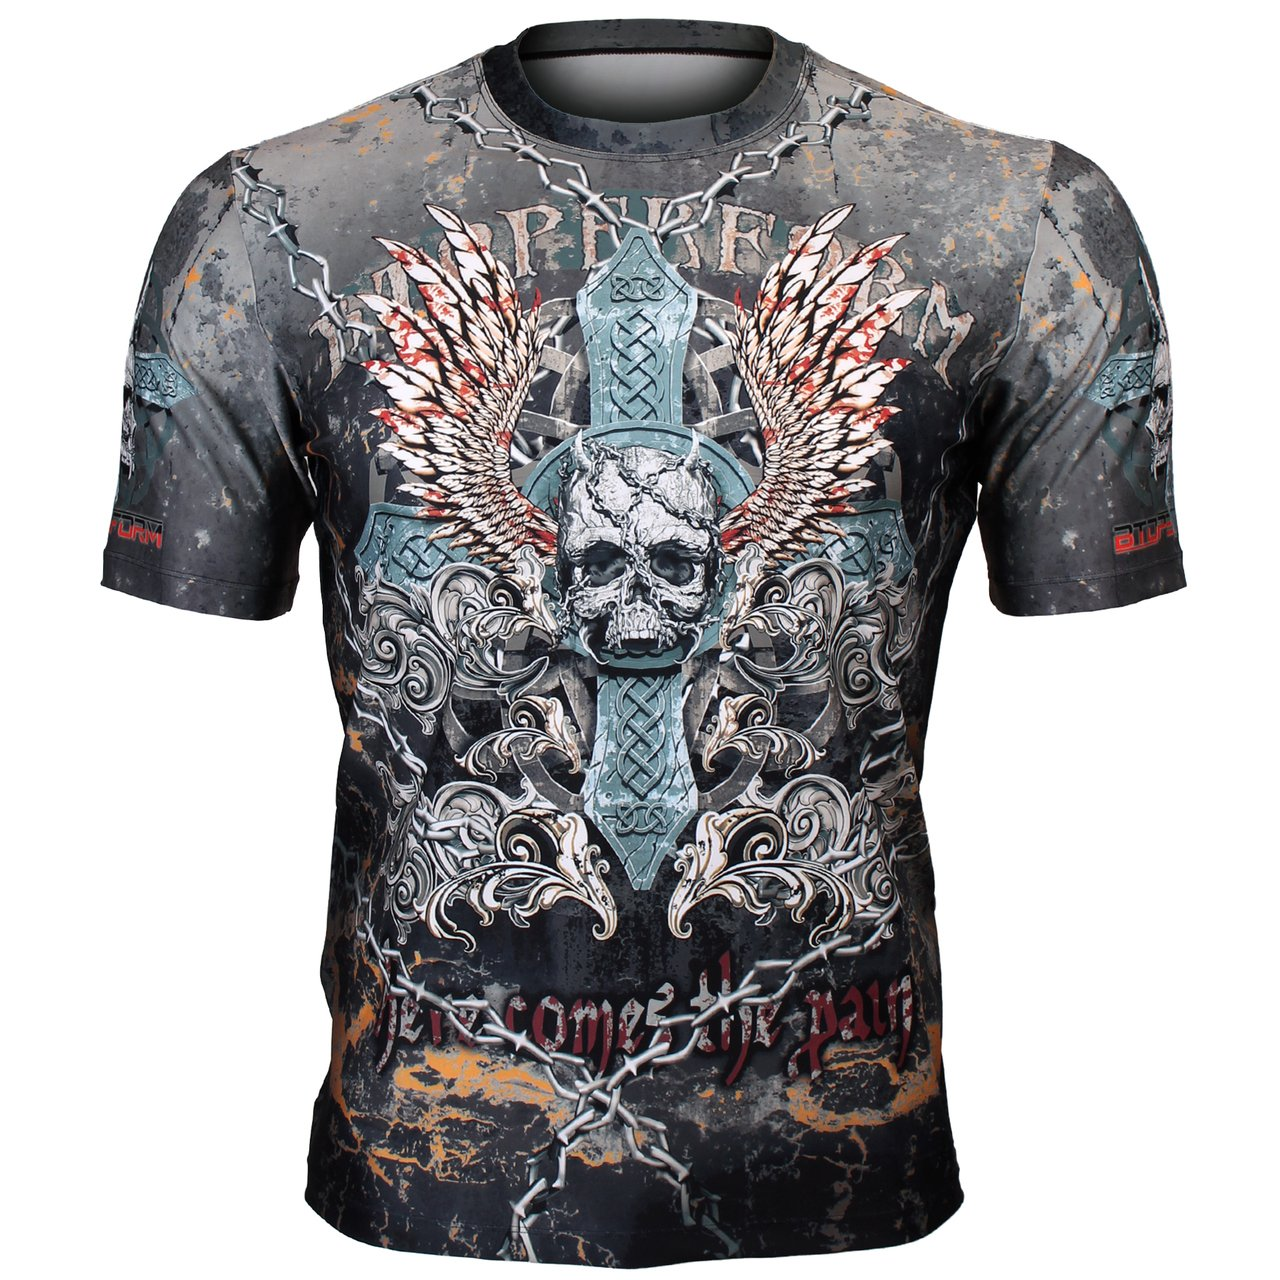 Btoperform Surf Full Graphic Loose-Fit Crew Neck T-Shirts FR-359